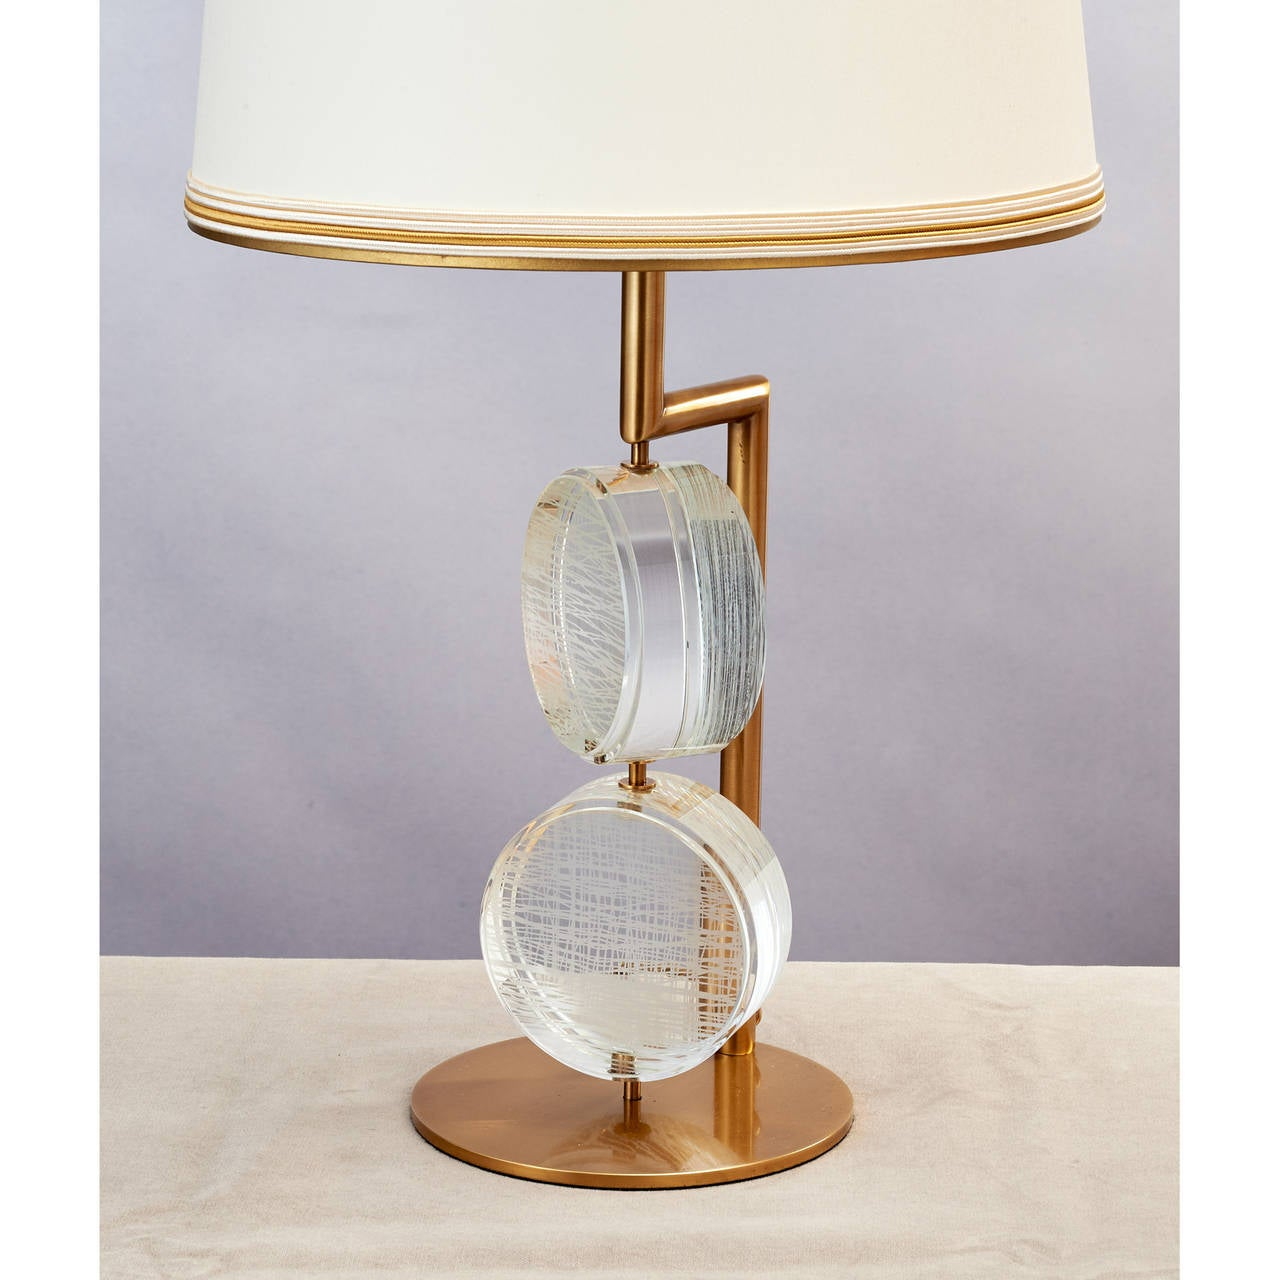 Limited Edition Pair of Etched Glass Lamps by Roberto Rida In Excellent Condition For Sale In New York, NY